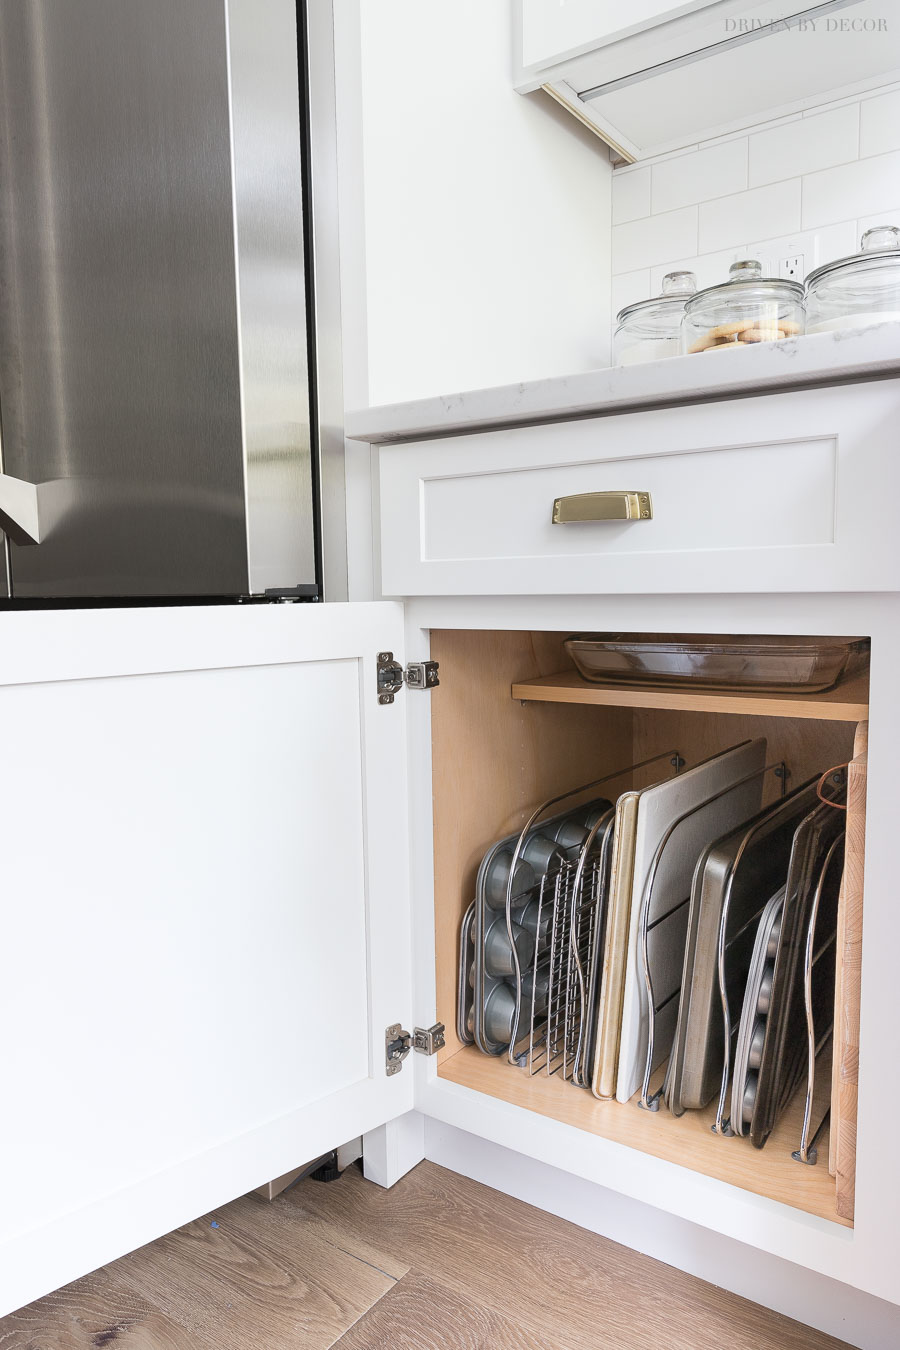 Cabinet Storage Organization Ideas From Our New Kitchen